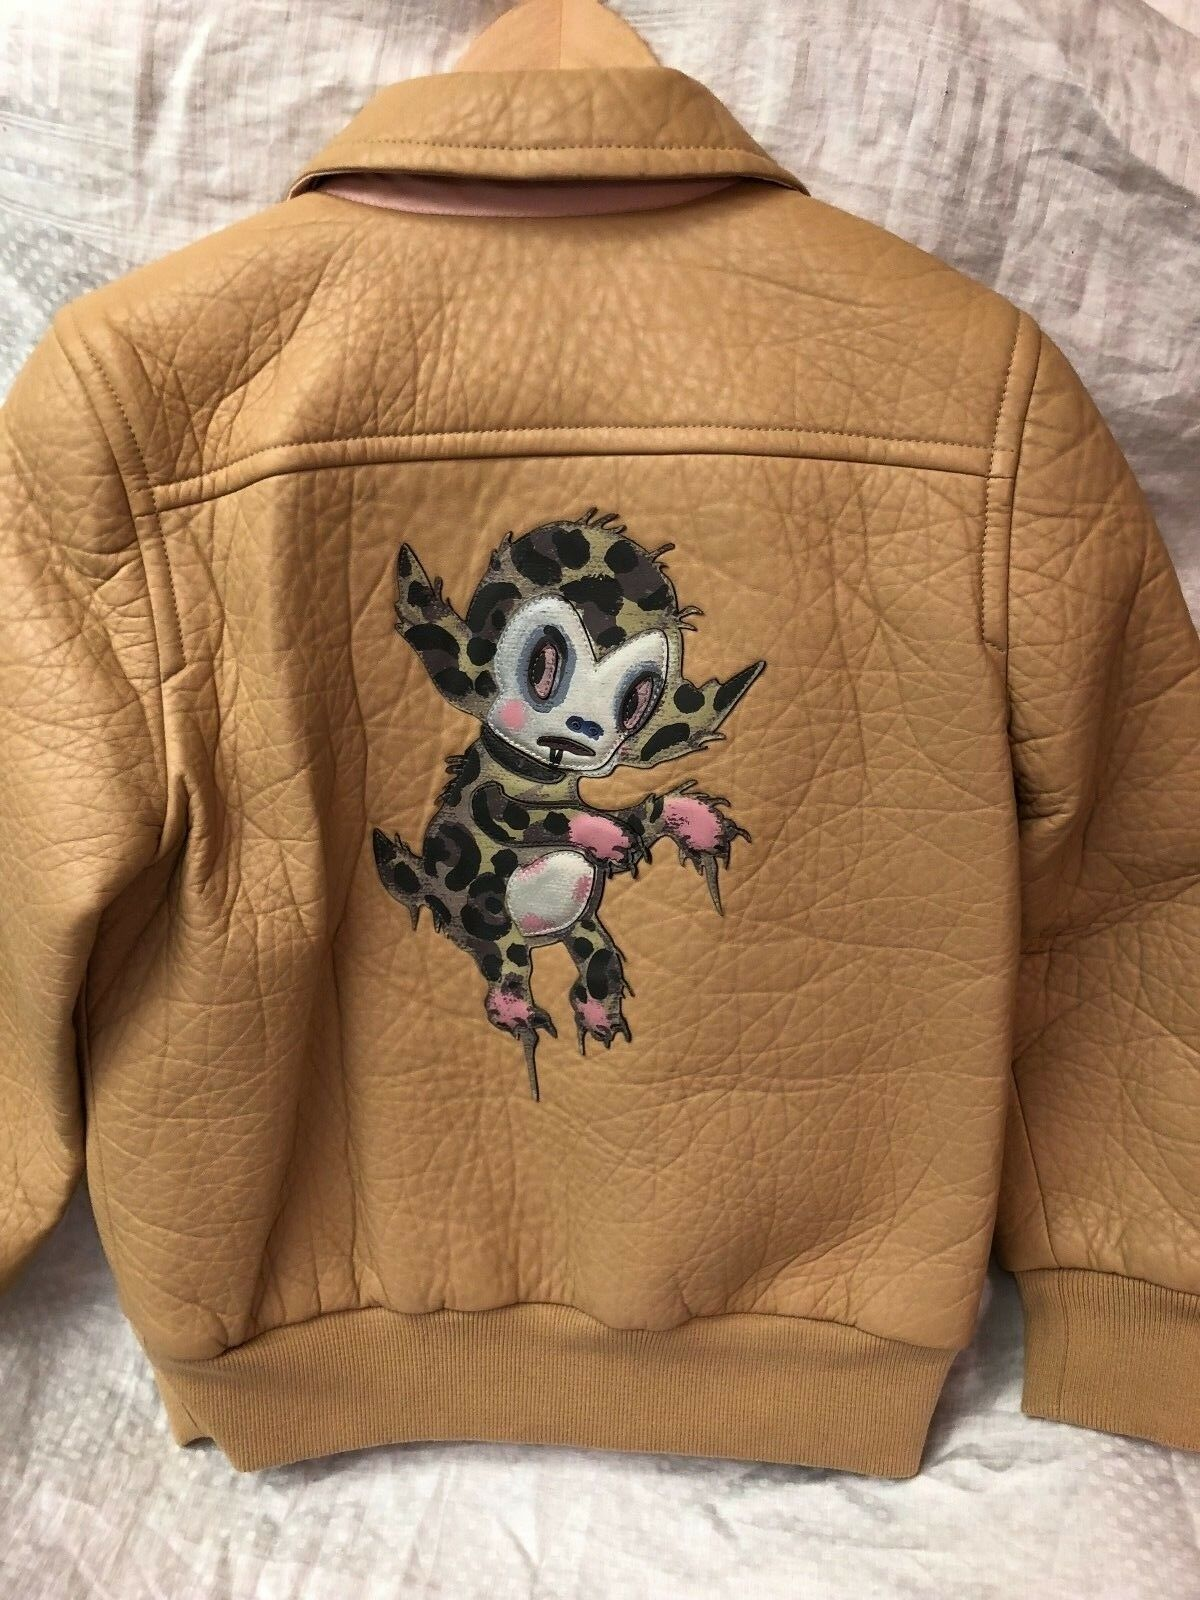 Coach Women's Limited Edition Rare Gary Baseman Leather Jacket Small $1,895,00